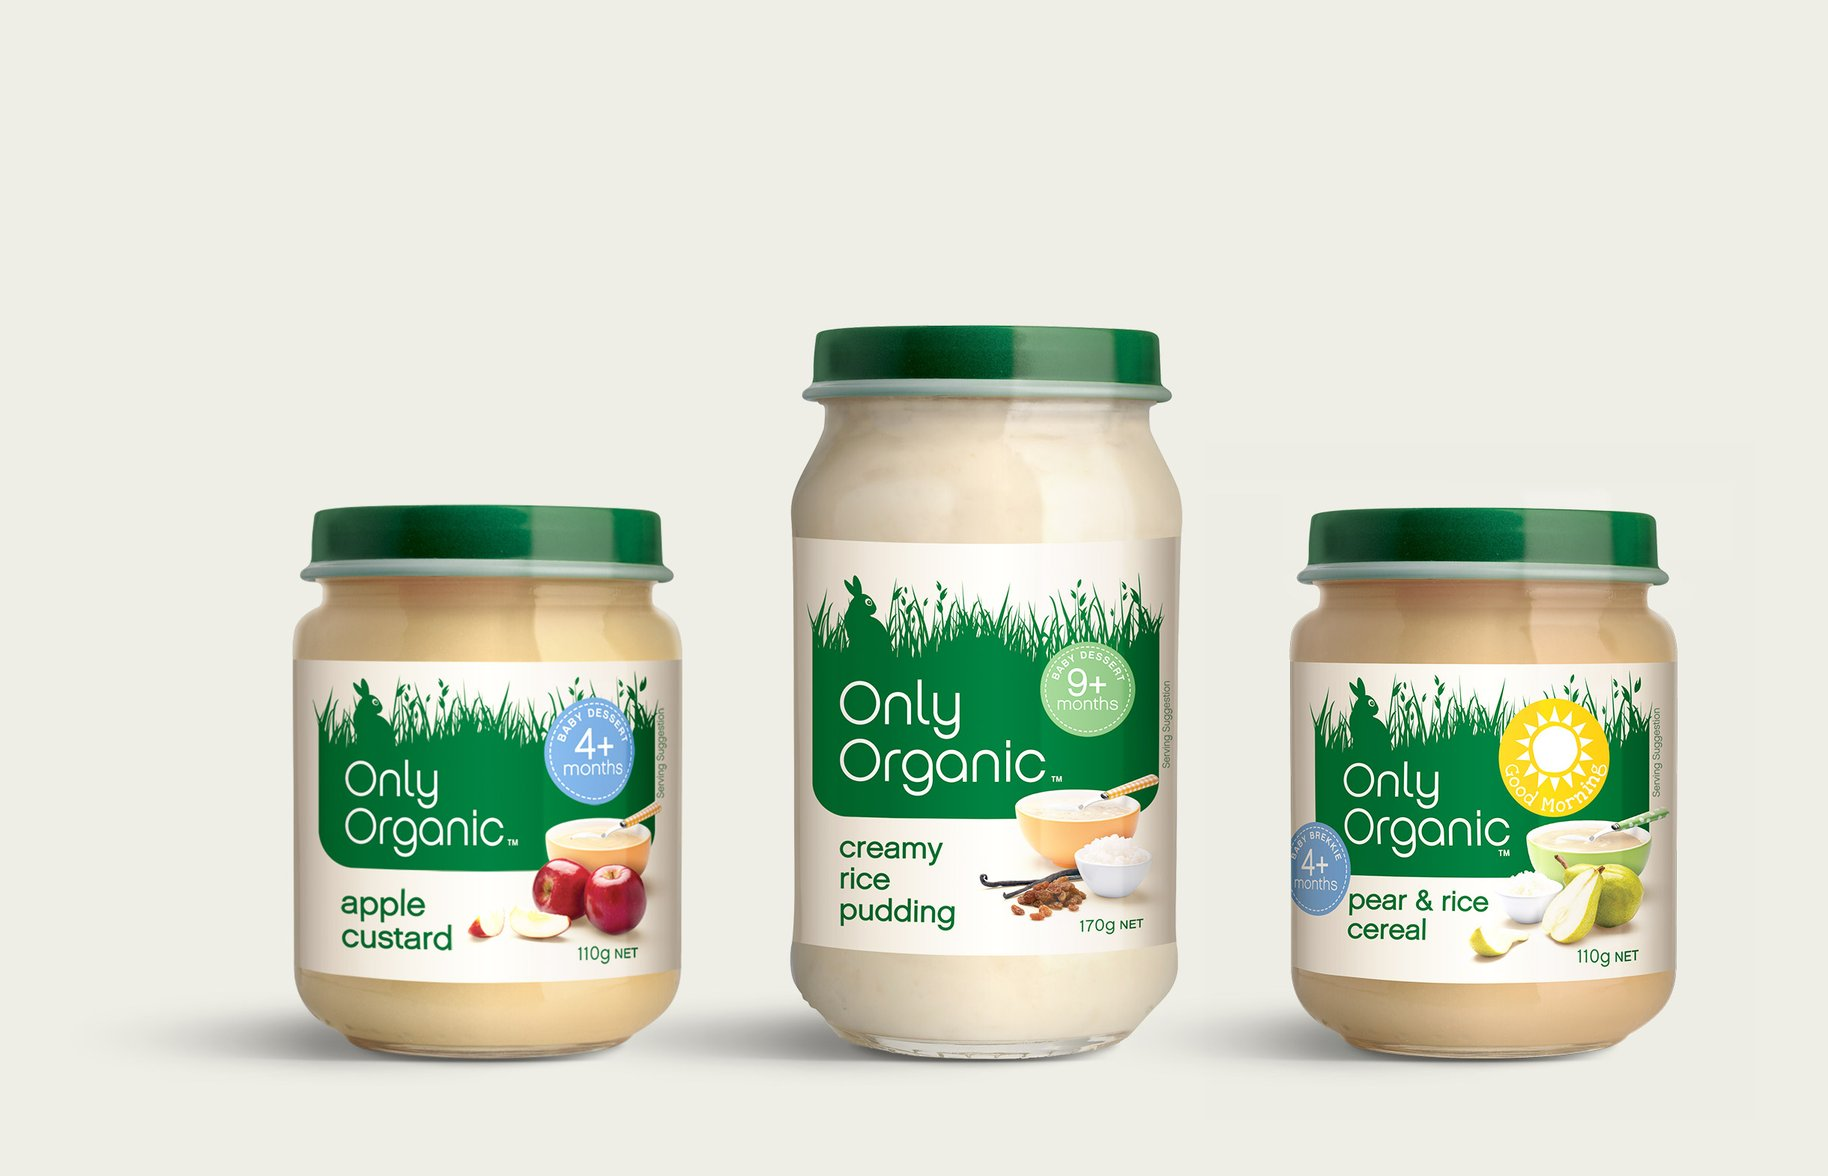 Only Organic baby food jars packaging